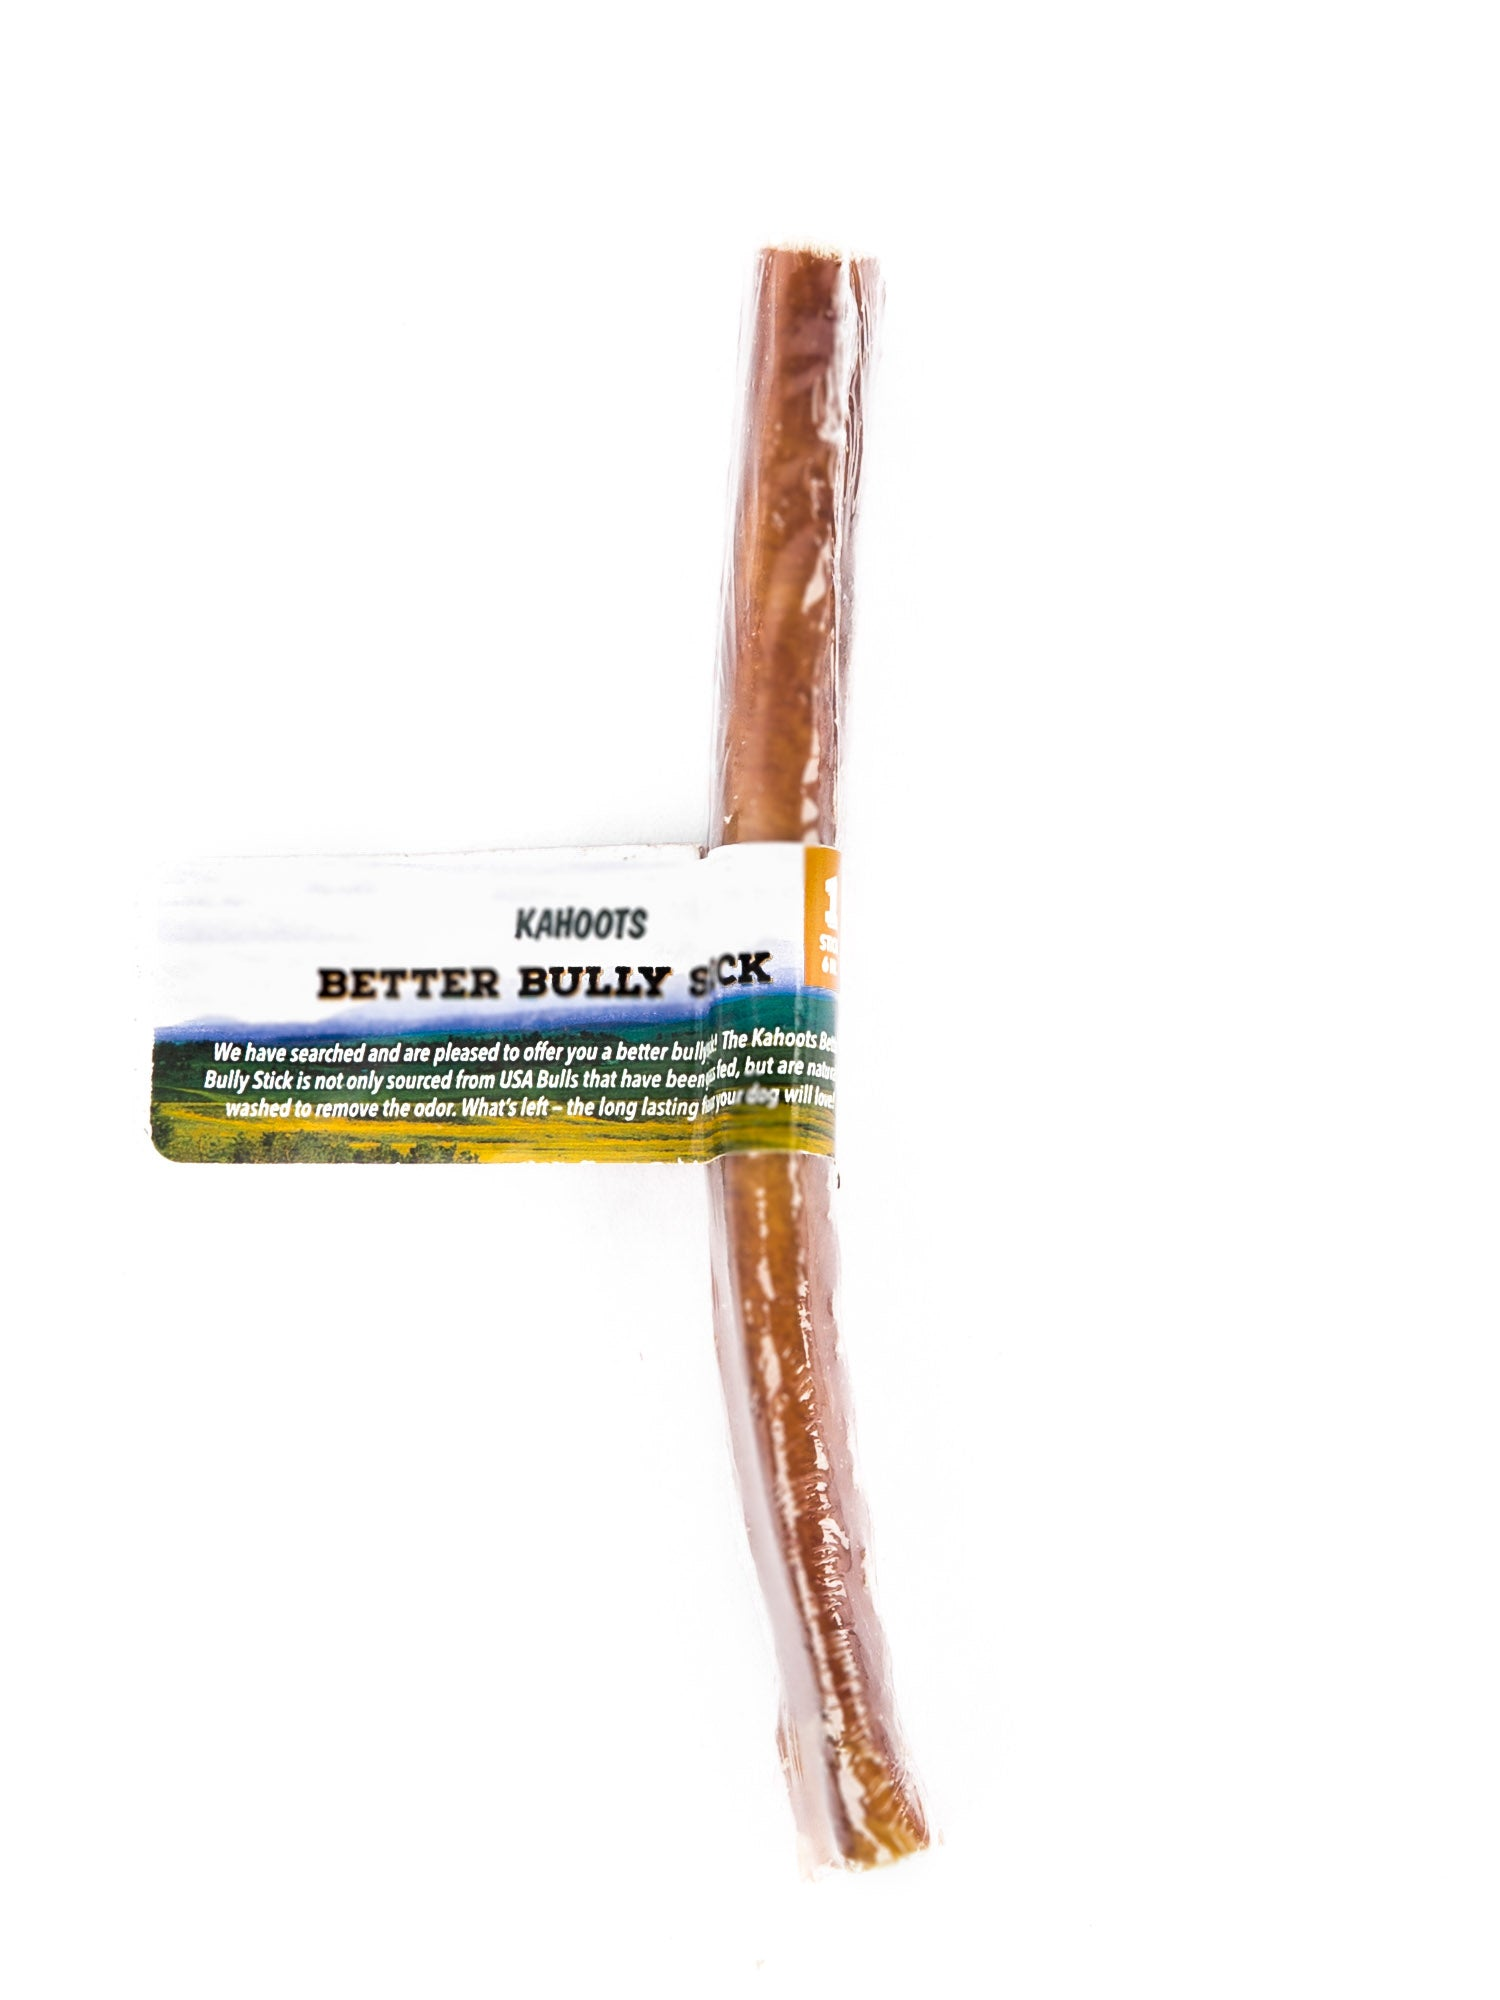 A single 6 inch bully stick